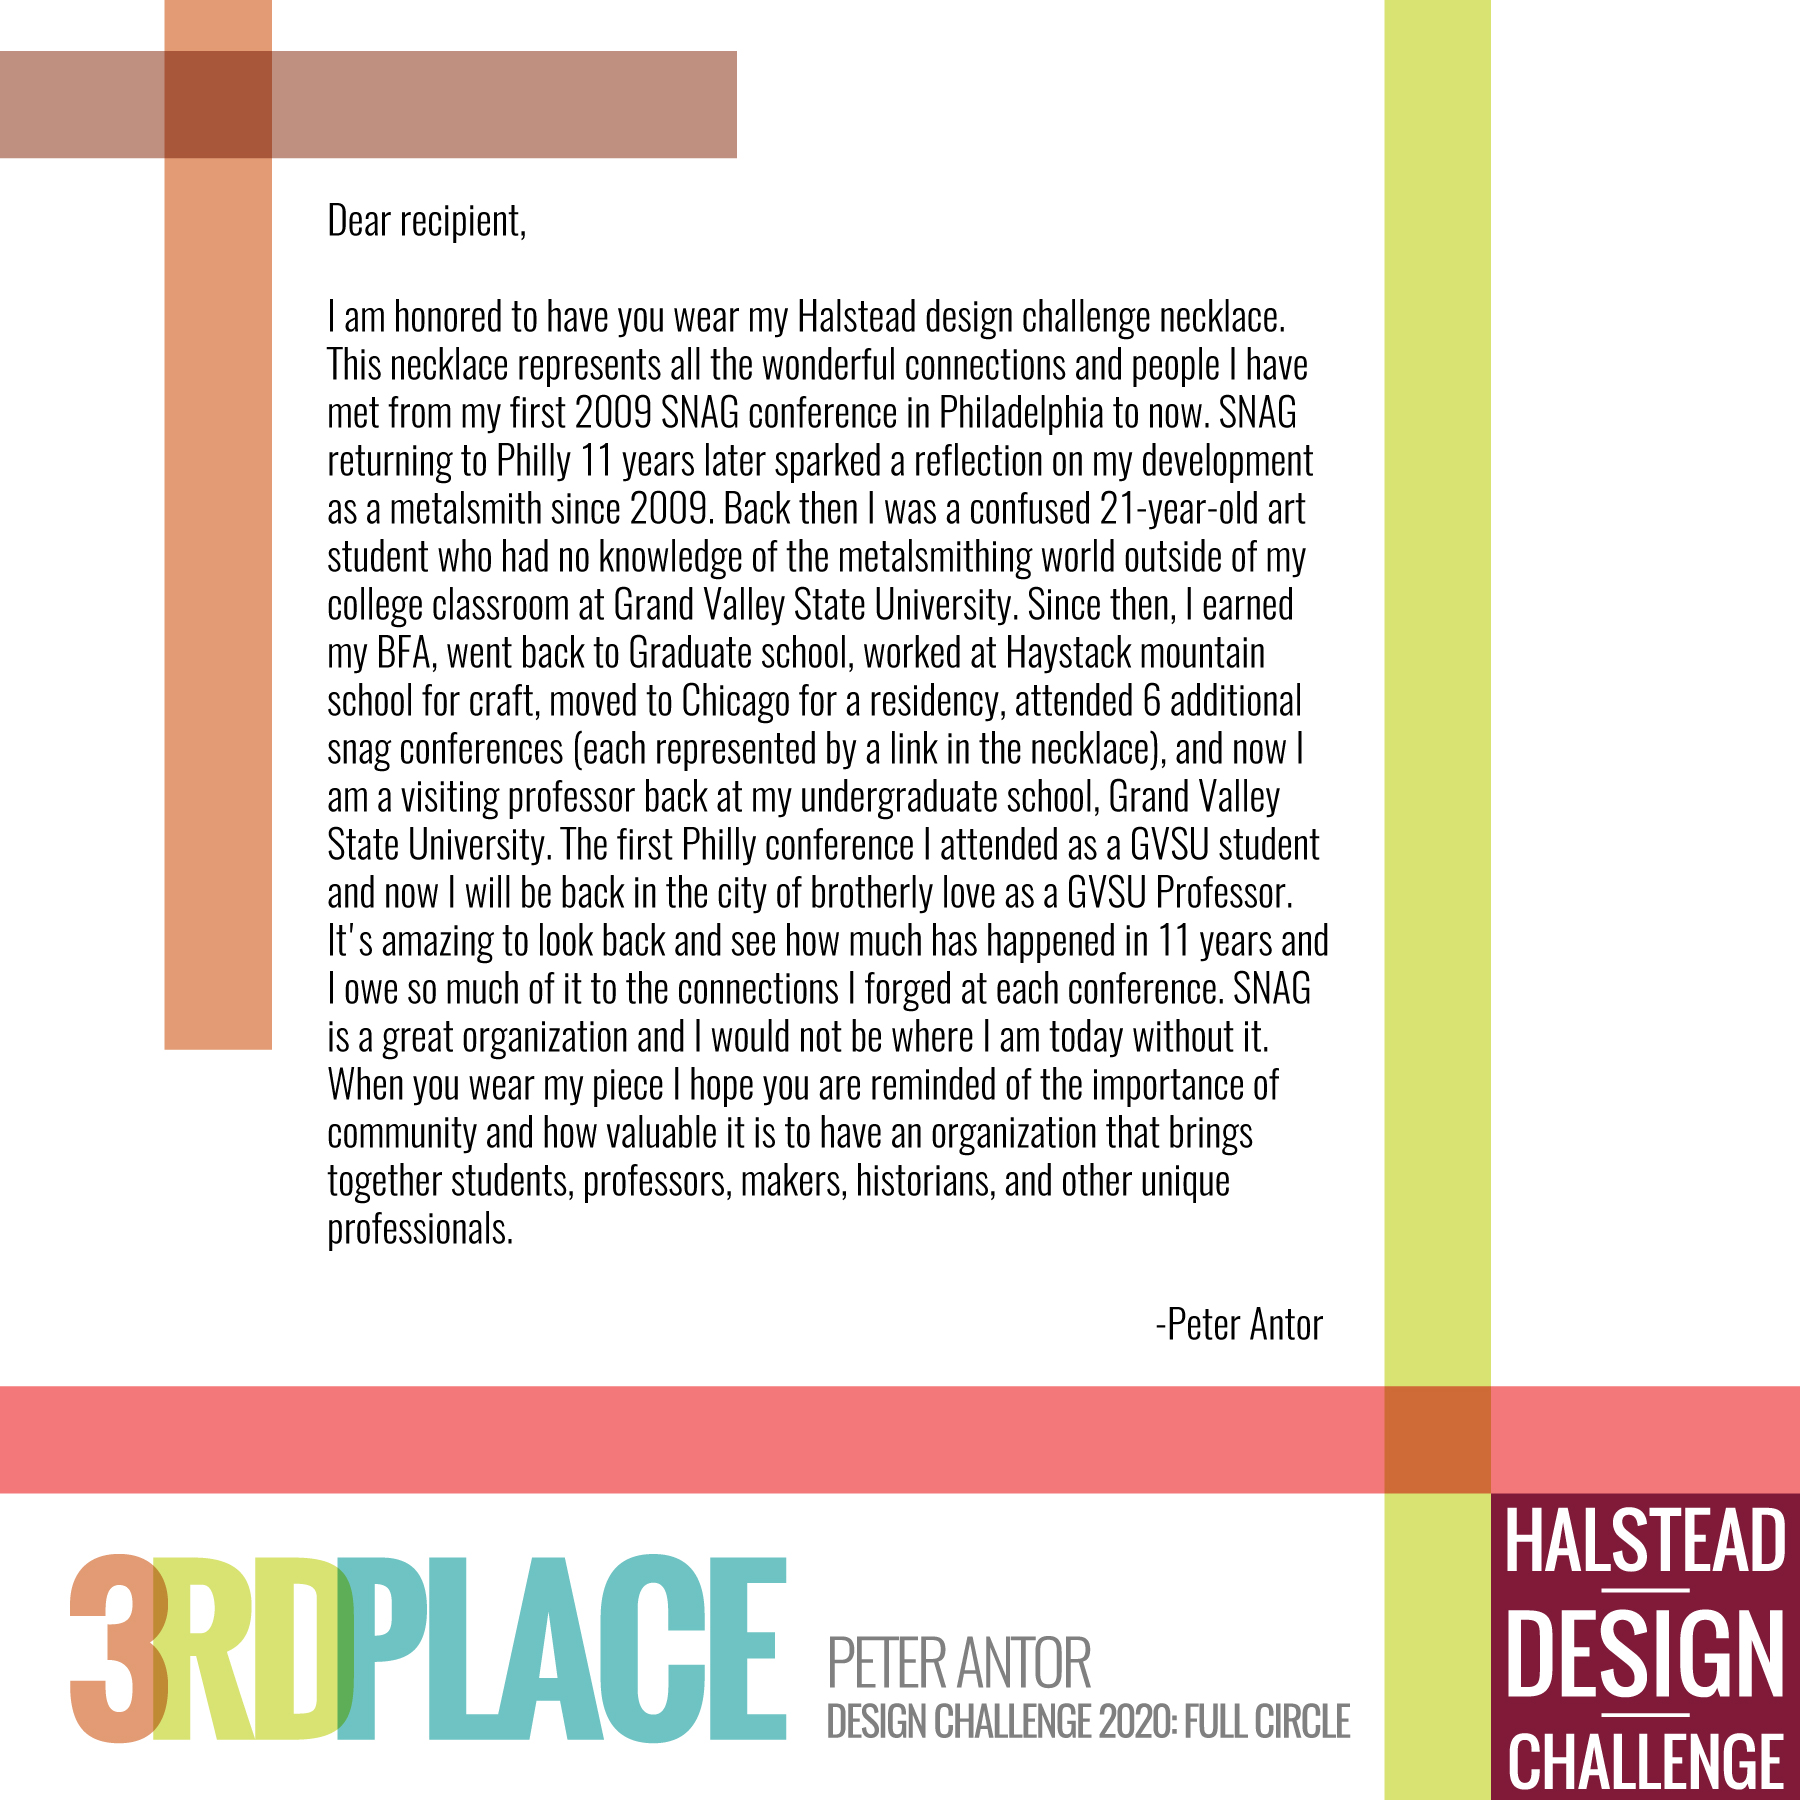 HDC 2020 3rd Place Peter Antor Letter to the Wearer